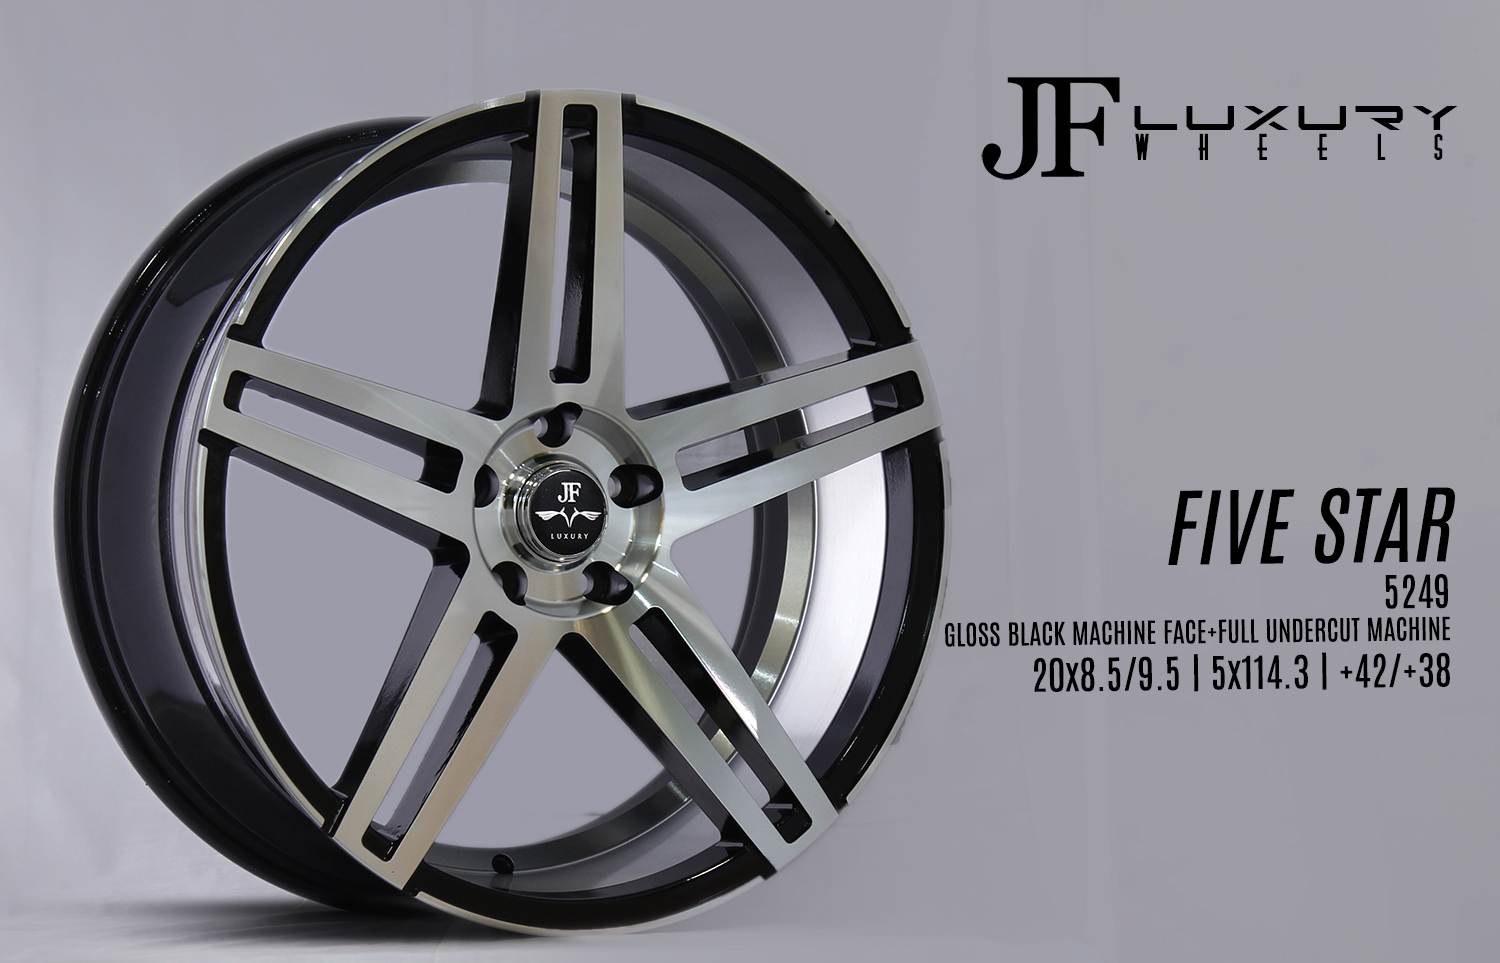 5249 FIVE STAR GLOSS BLACK MACHINE FACE+FULL UNDERCUT MACHINE 20x8,5-9,5 5x114,3 +42-+38 lOGO JF